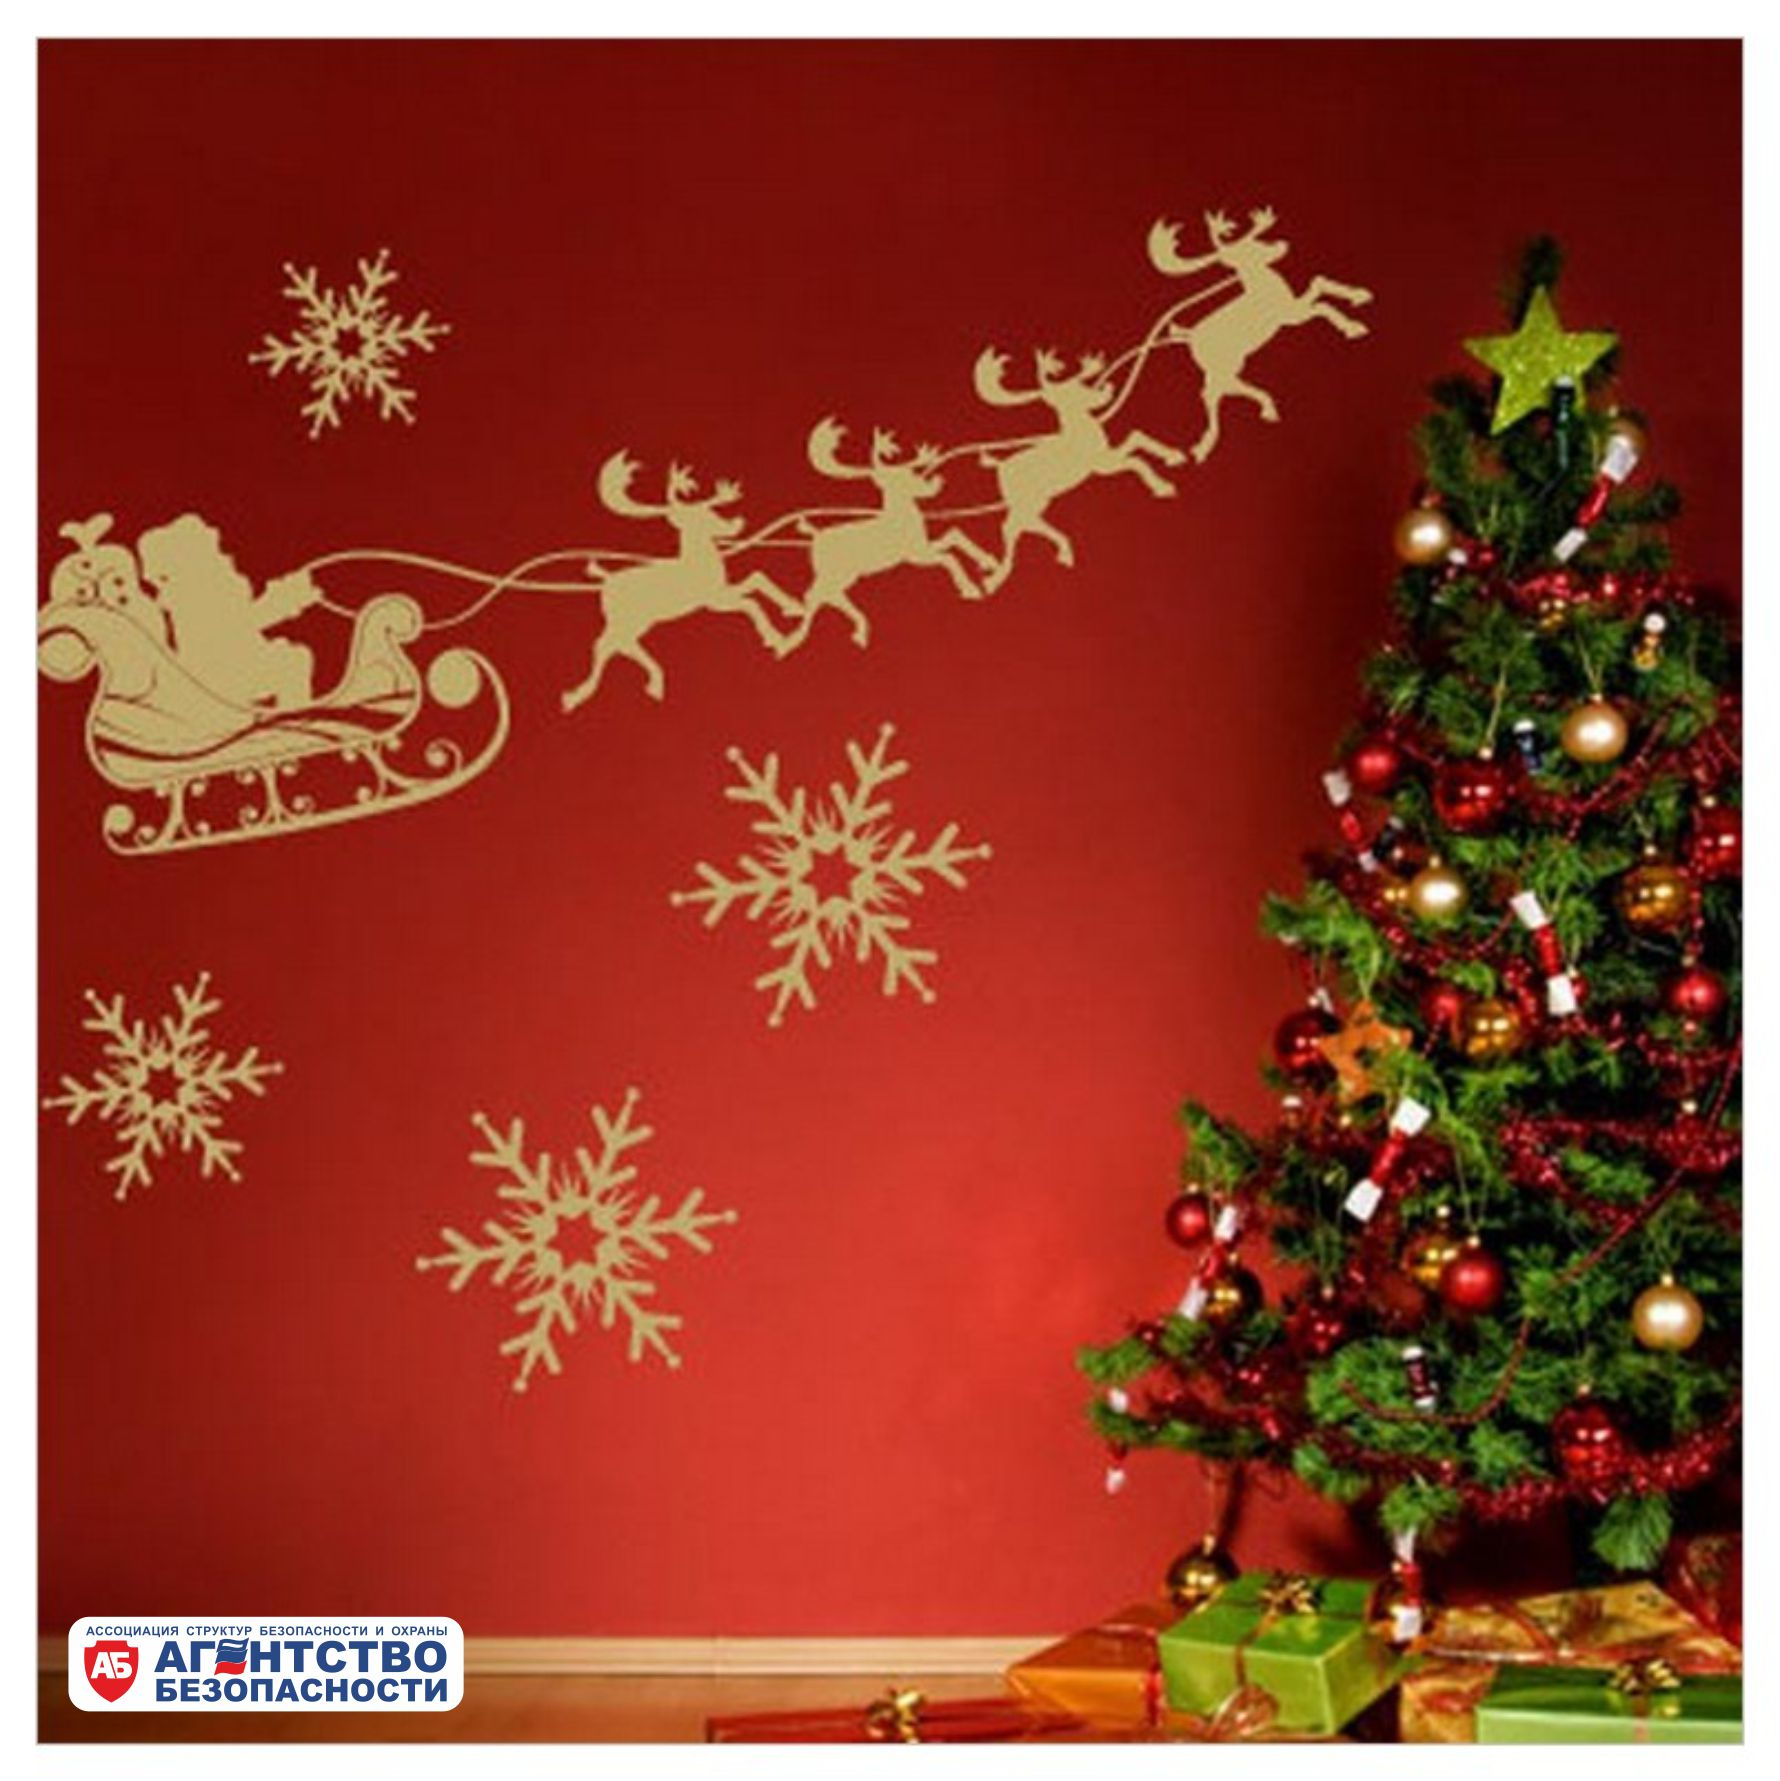 Quotes about christmas decorations 32 quotes for Christmas decoration quotes